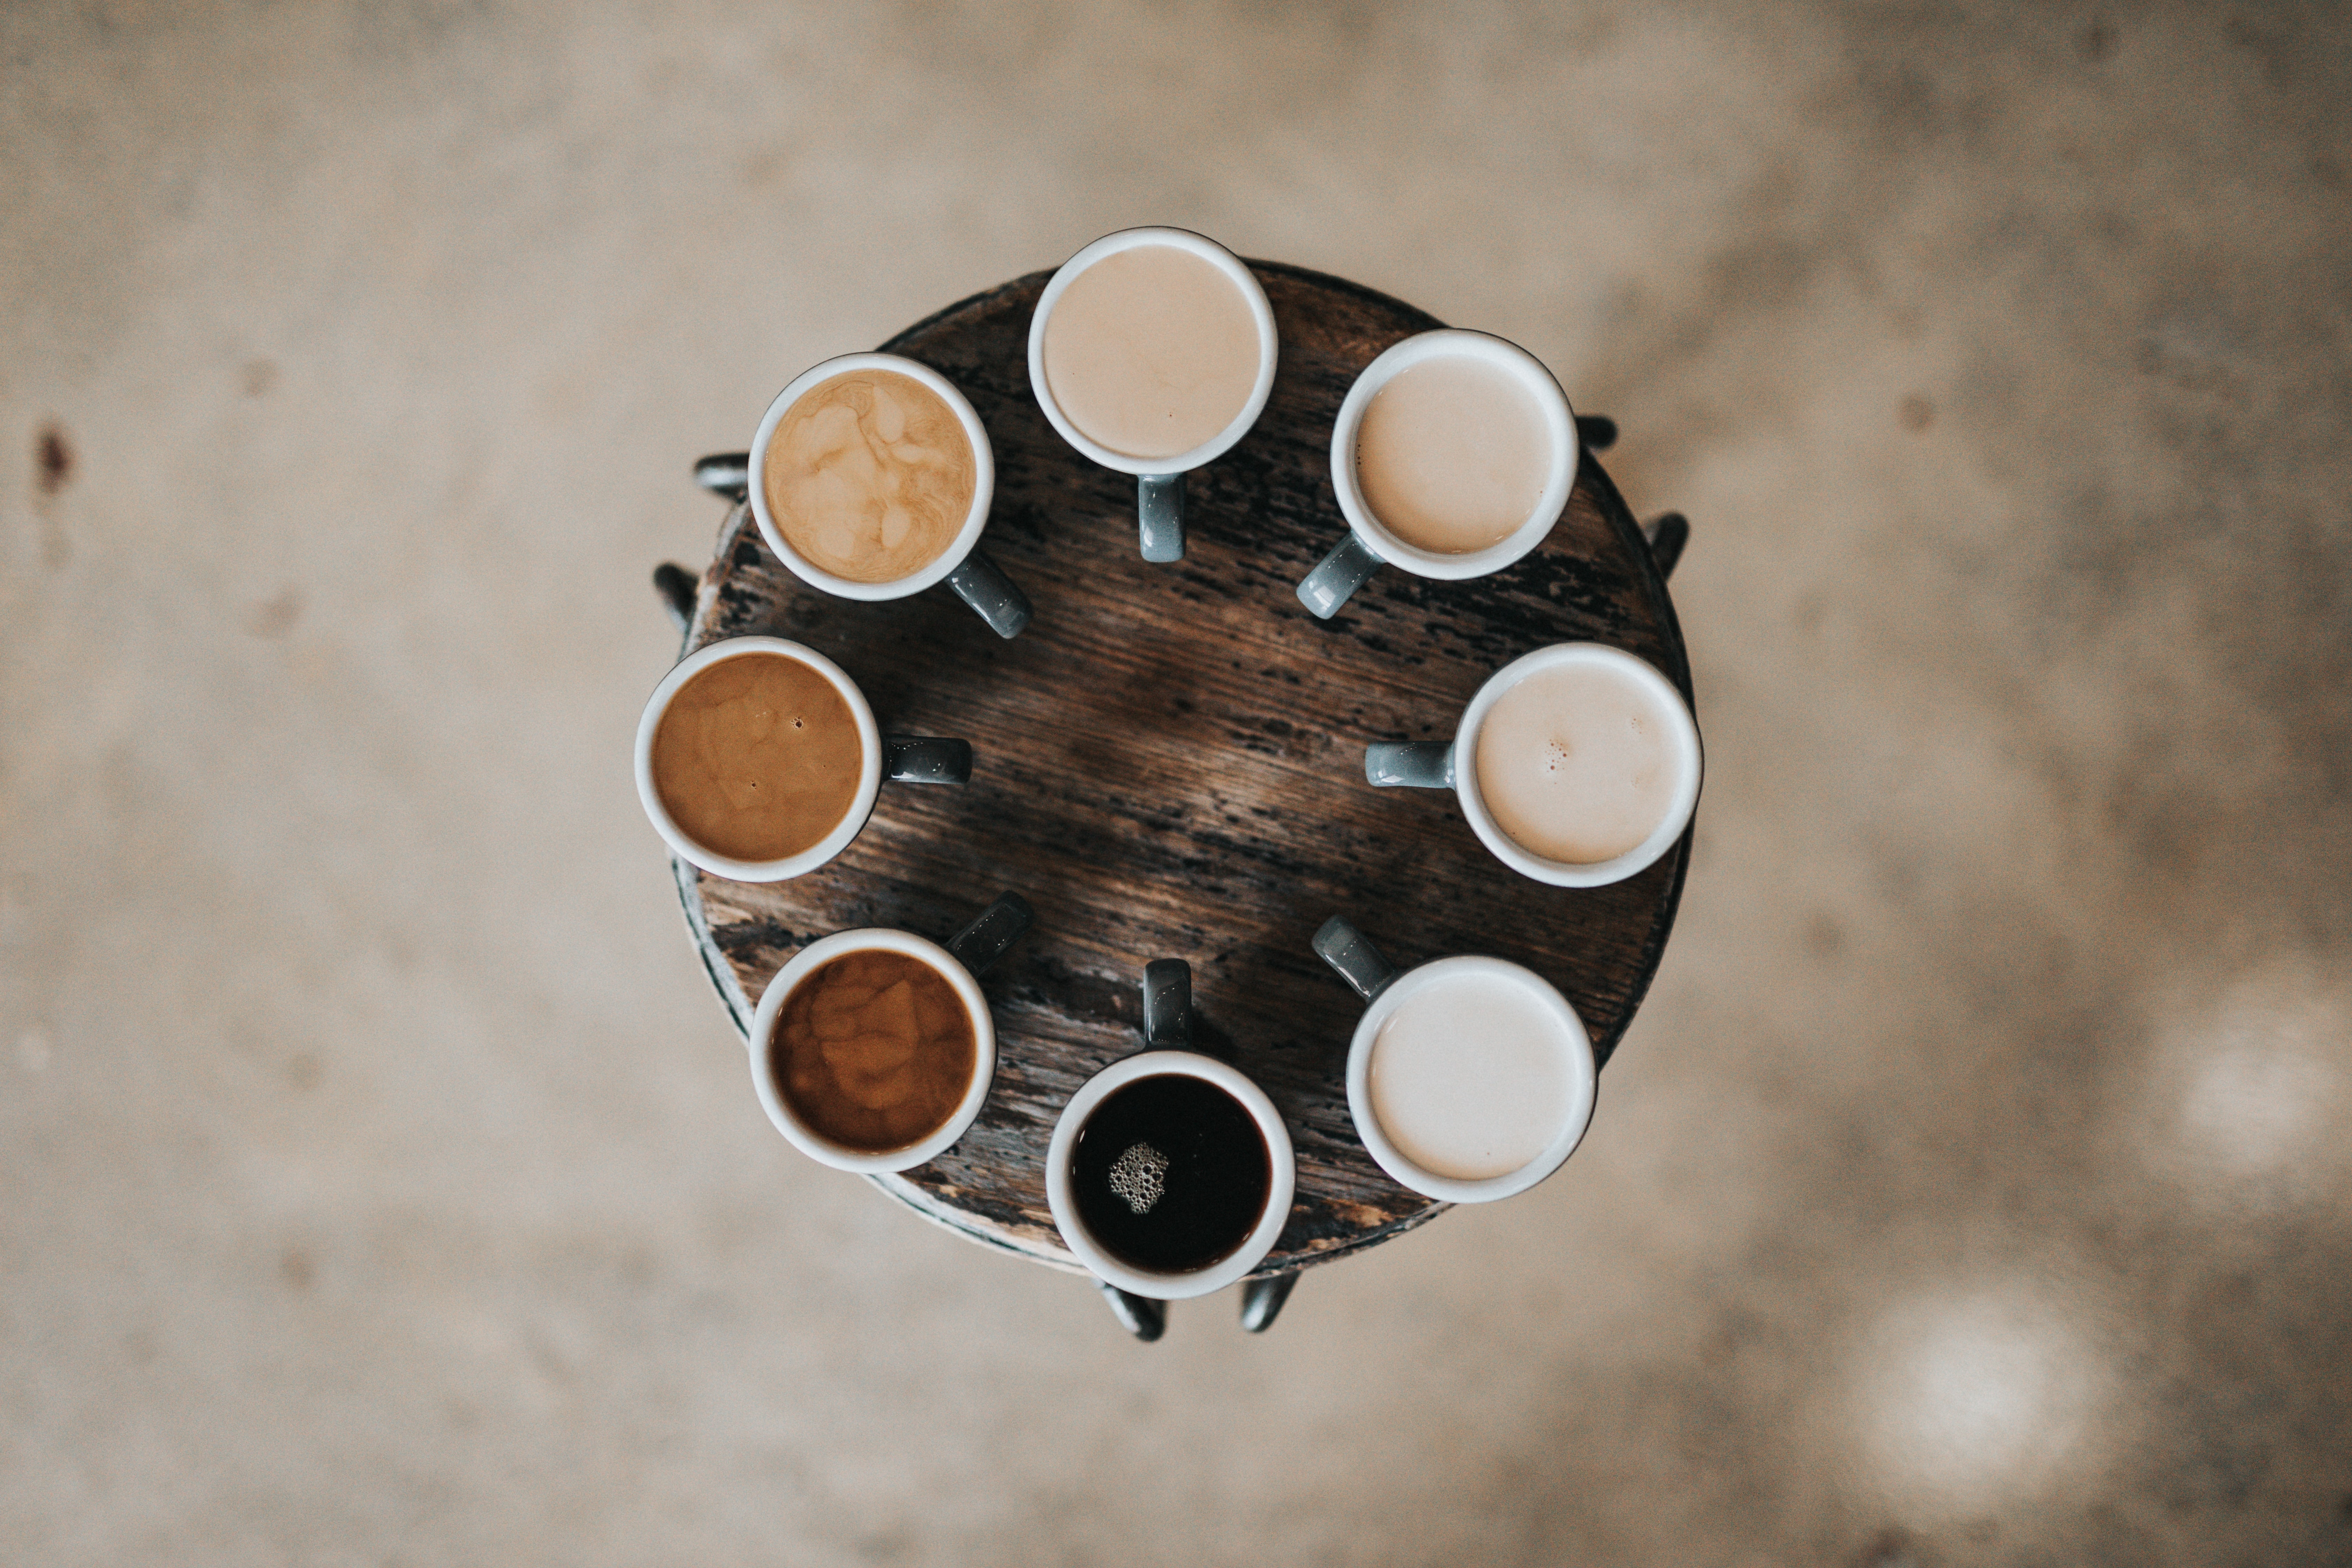 coffee cups ranging in color, from black coffee to milky-white liquid, representing diversity